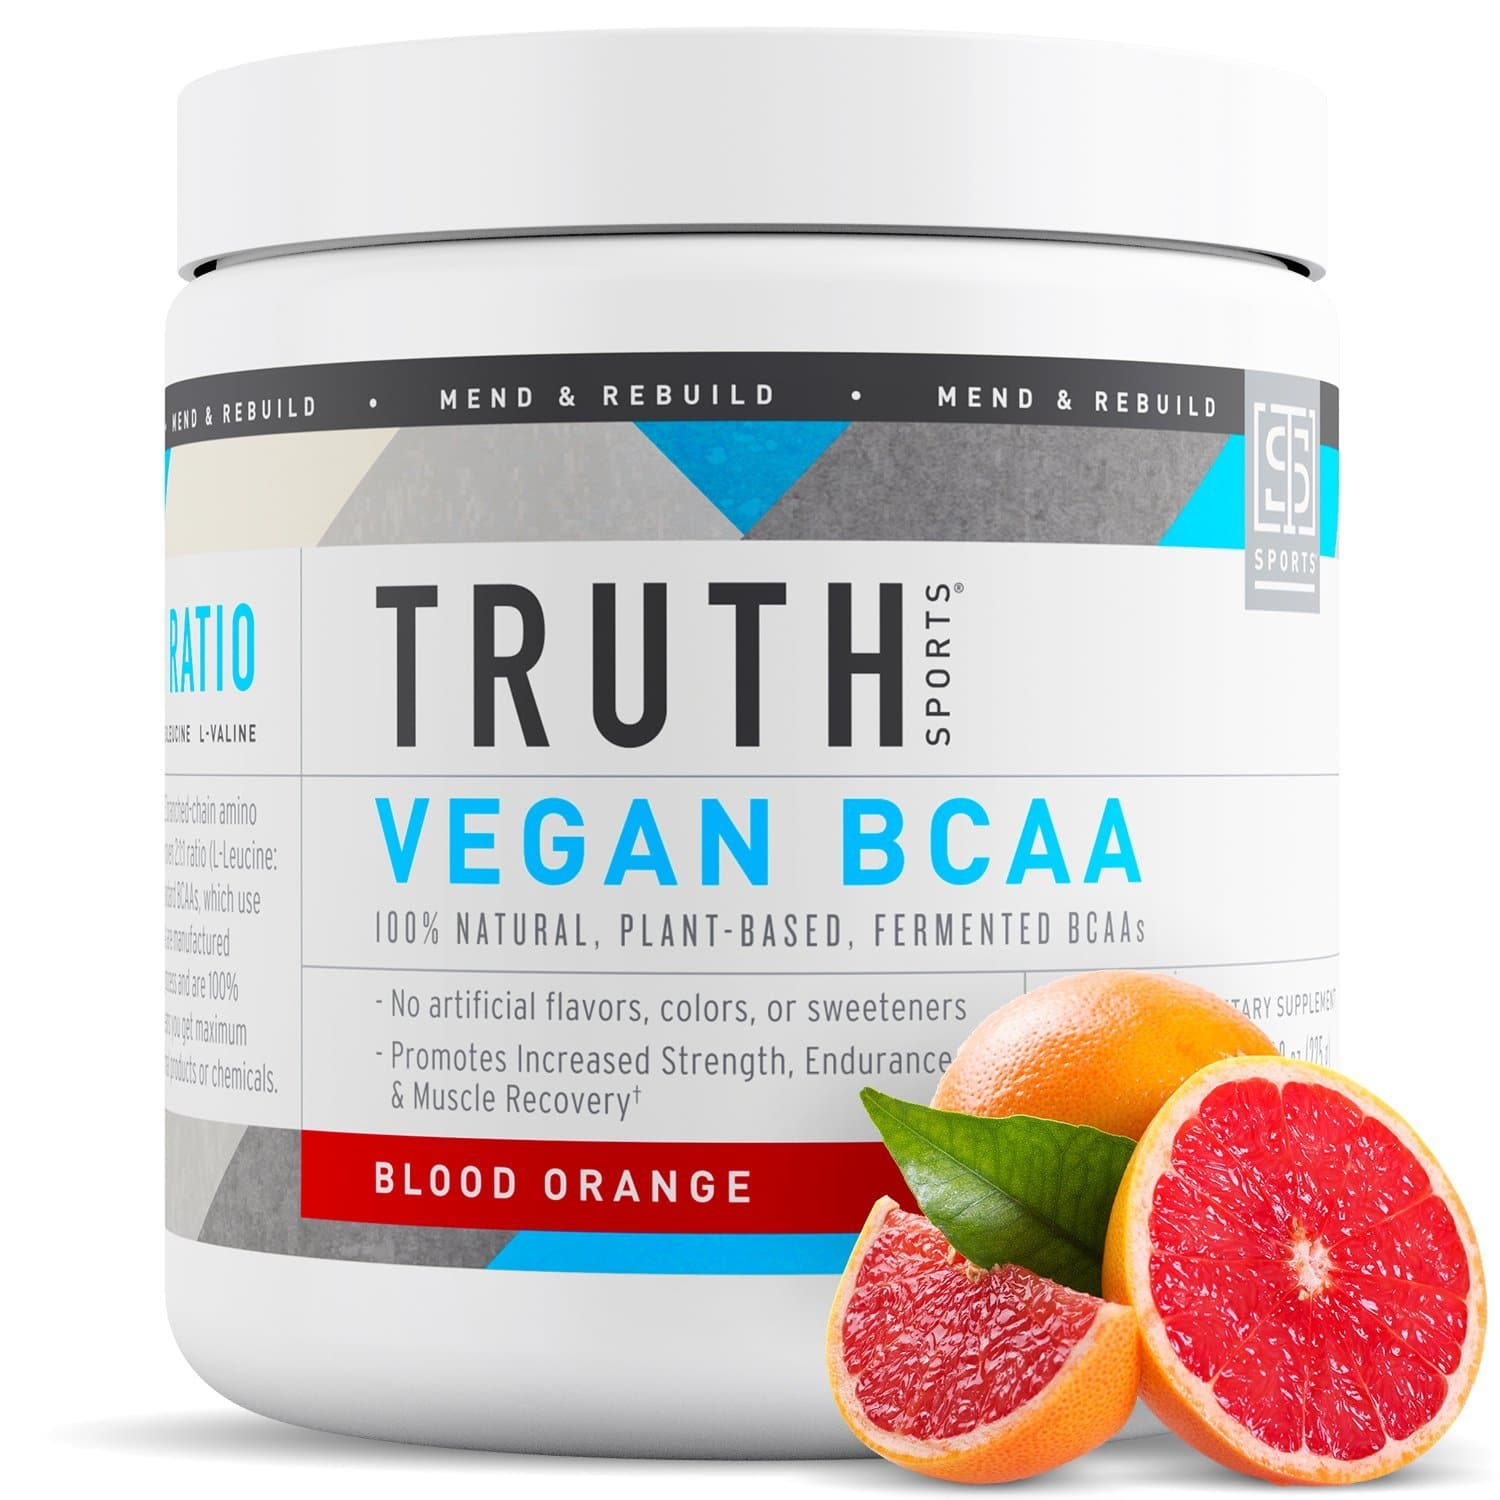 5. Vegan BCAA by Truth Nutrition